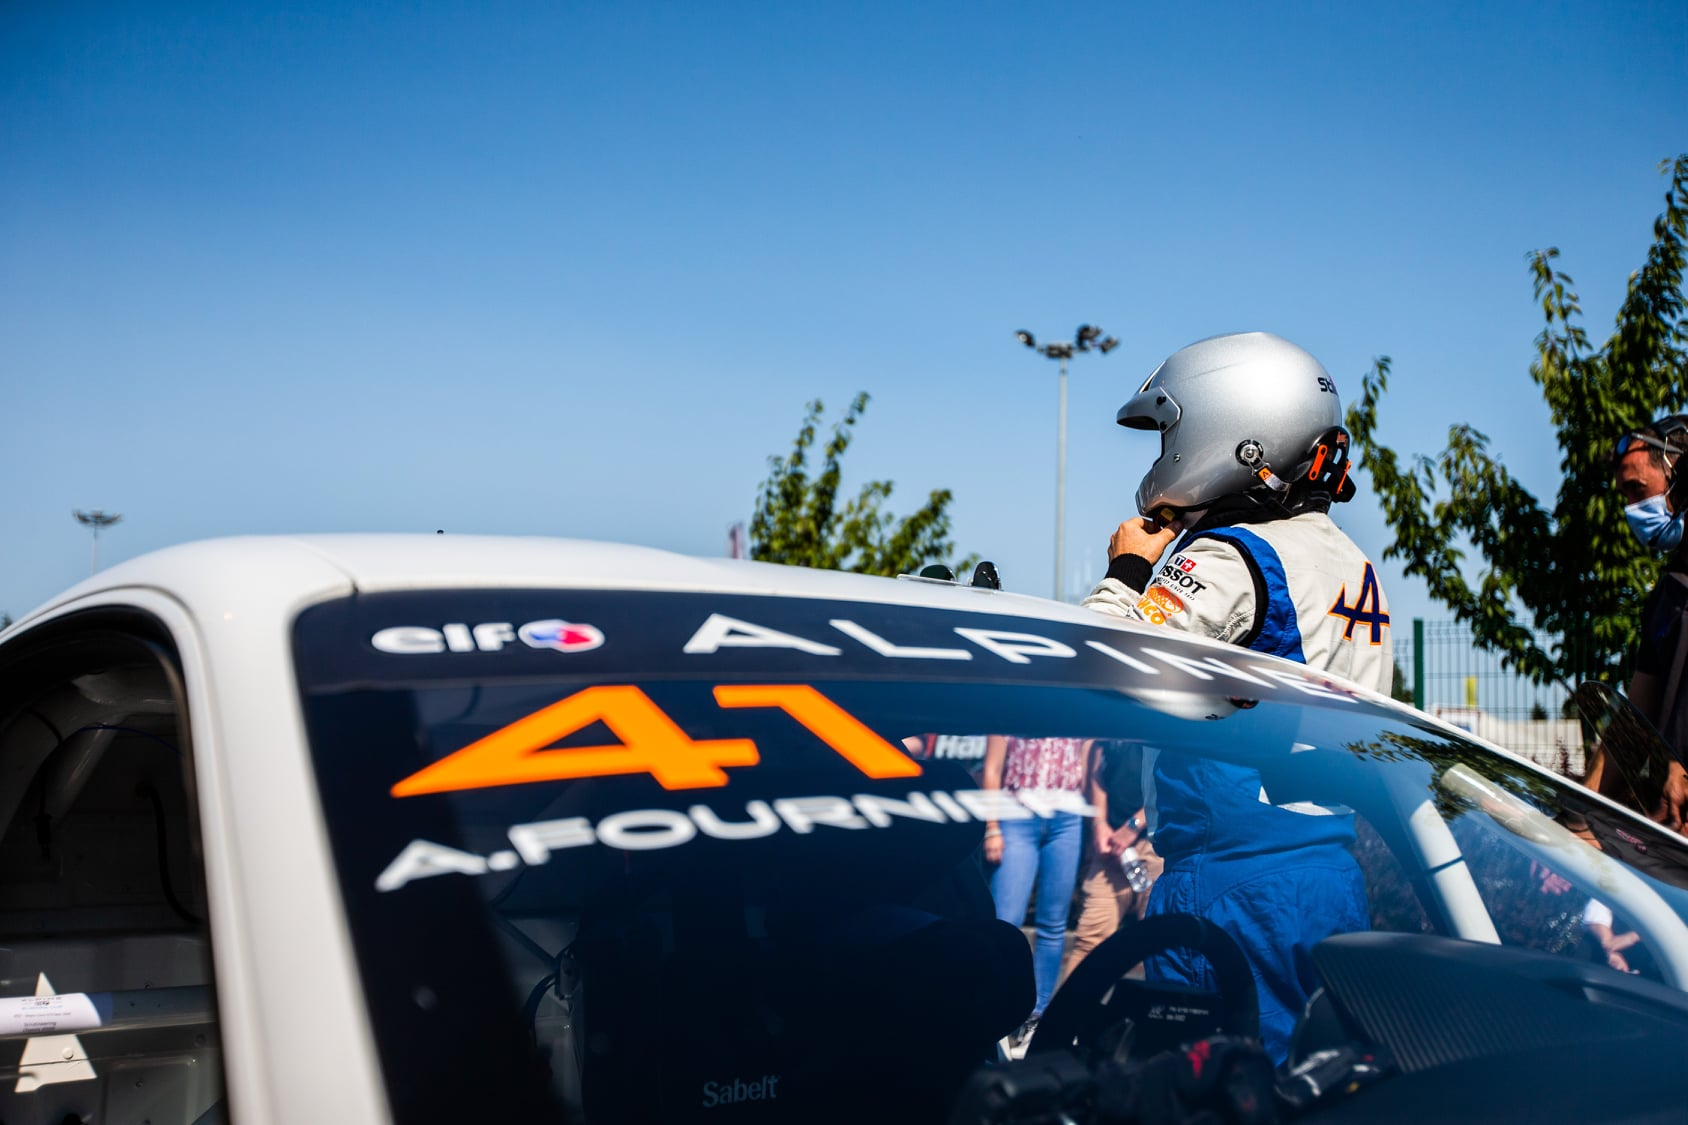 Alpine Elf Europa Cup 2020 Magny Cours A110 Cup 35 | Alpine Elf Europa Cup 2020: Jean-Baptiste Mela triomphe à Magny-Cours